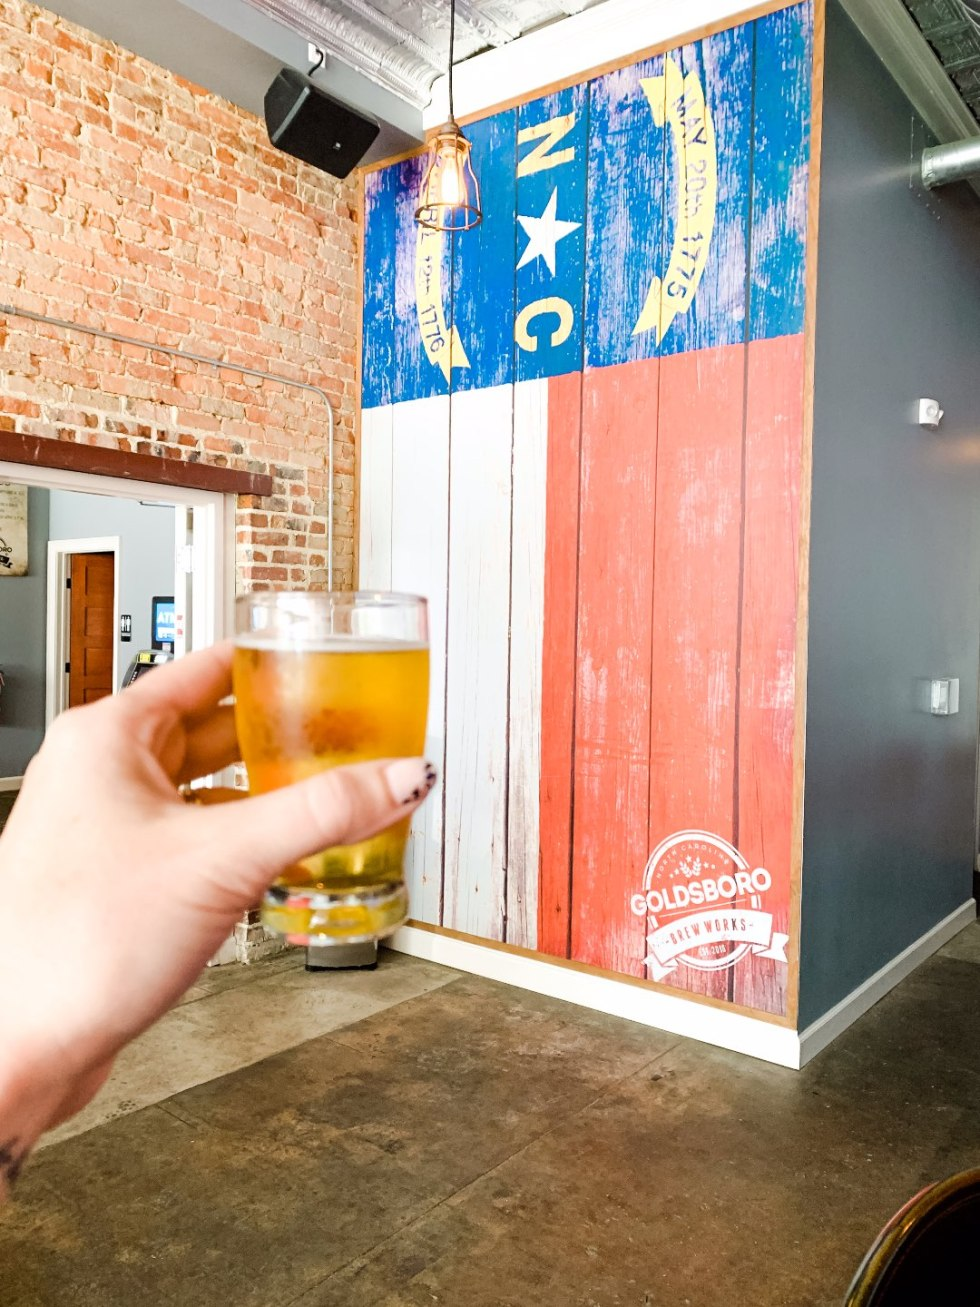 Eastern North Carolina Travel Guide: Top 10 Things to Do in Goldsboro NC by popular North Carolina blog, I'm Fixin' To: image of a woman holding up a glass of beer.